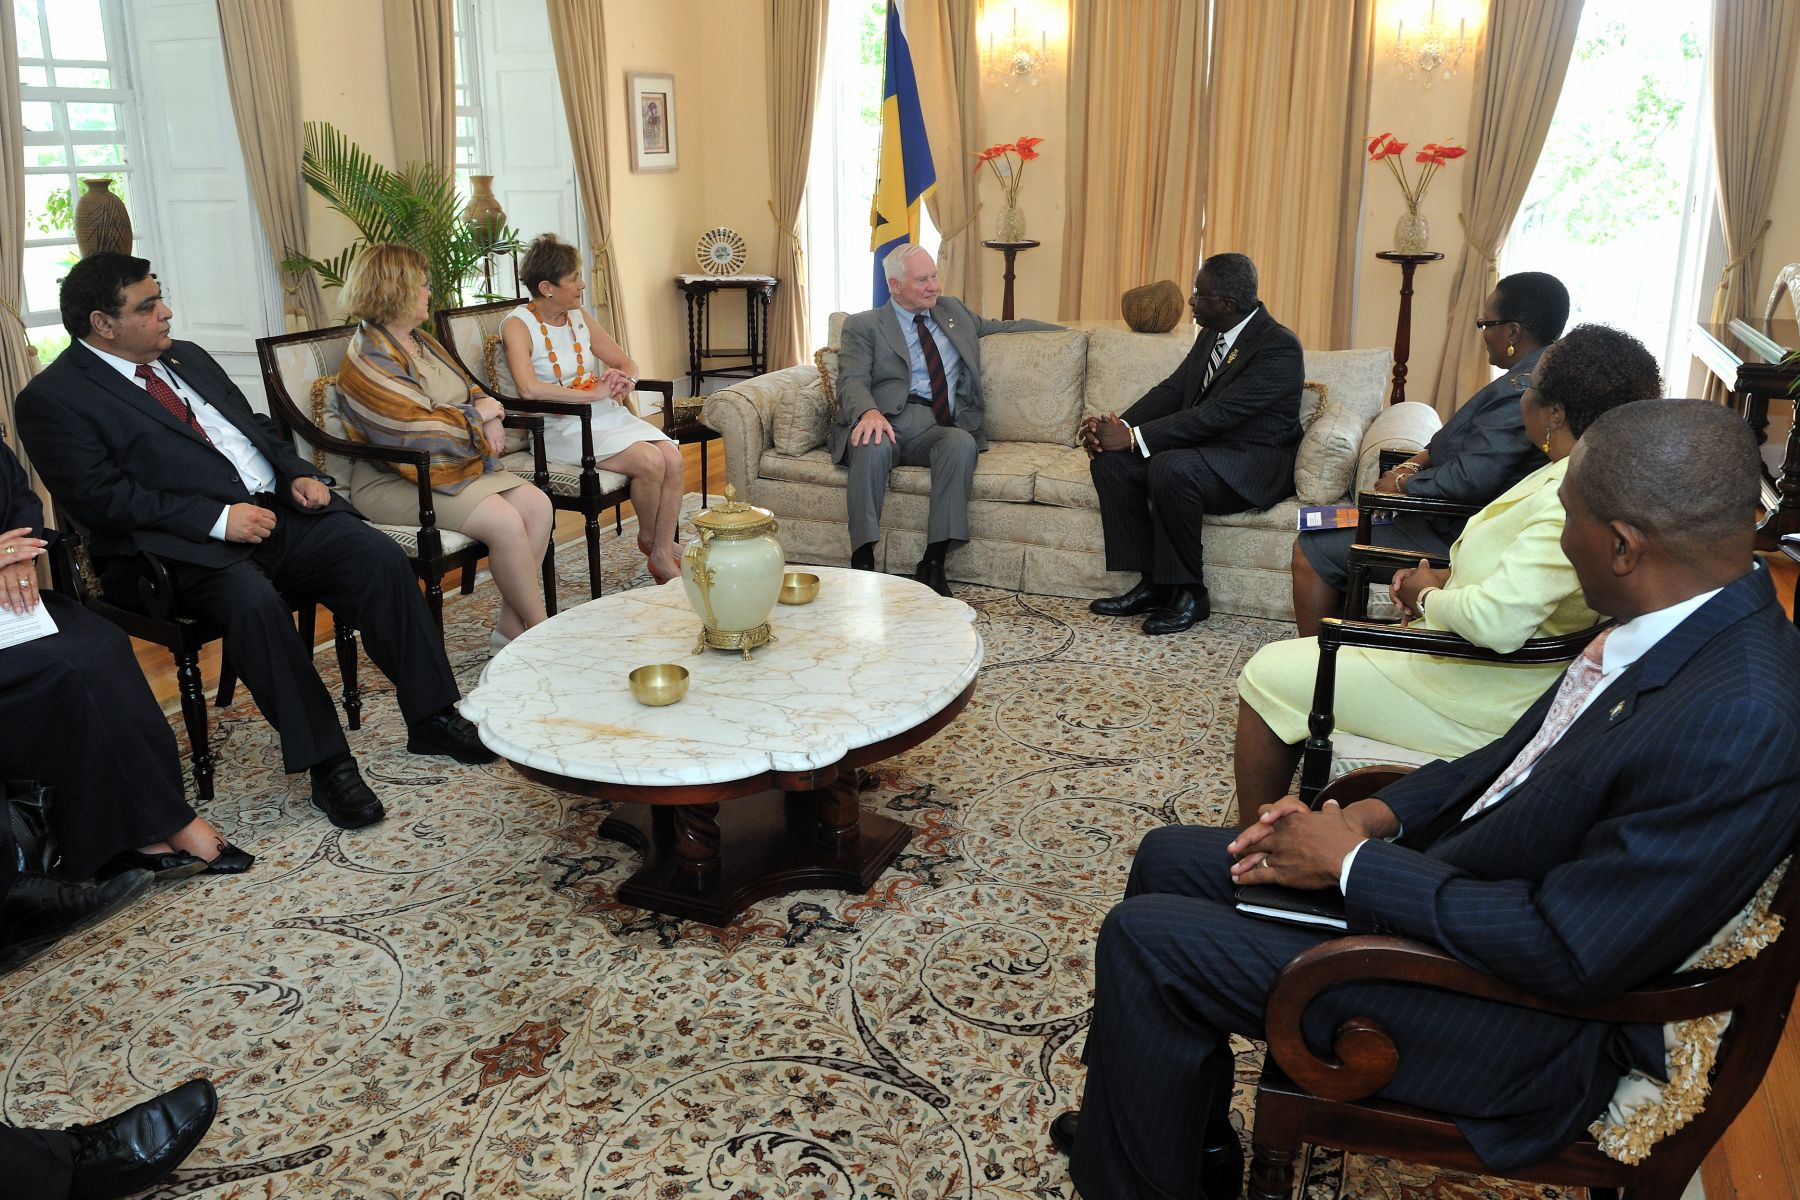 Their Excellencies and selected members of the Canadian delegation met with the Honourable Freundel Stuart, Prime Minister of Barbados.